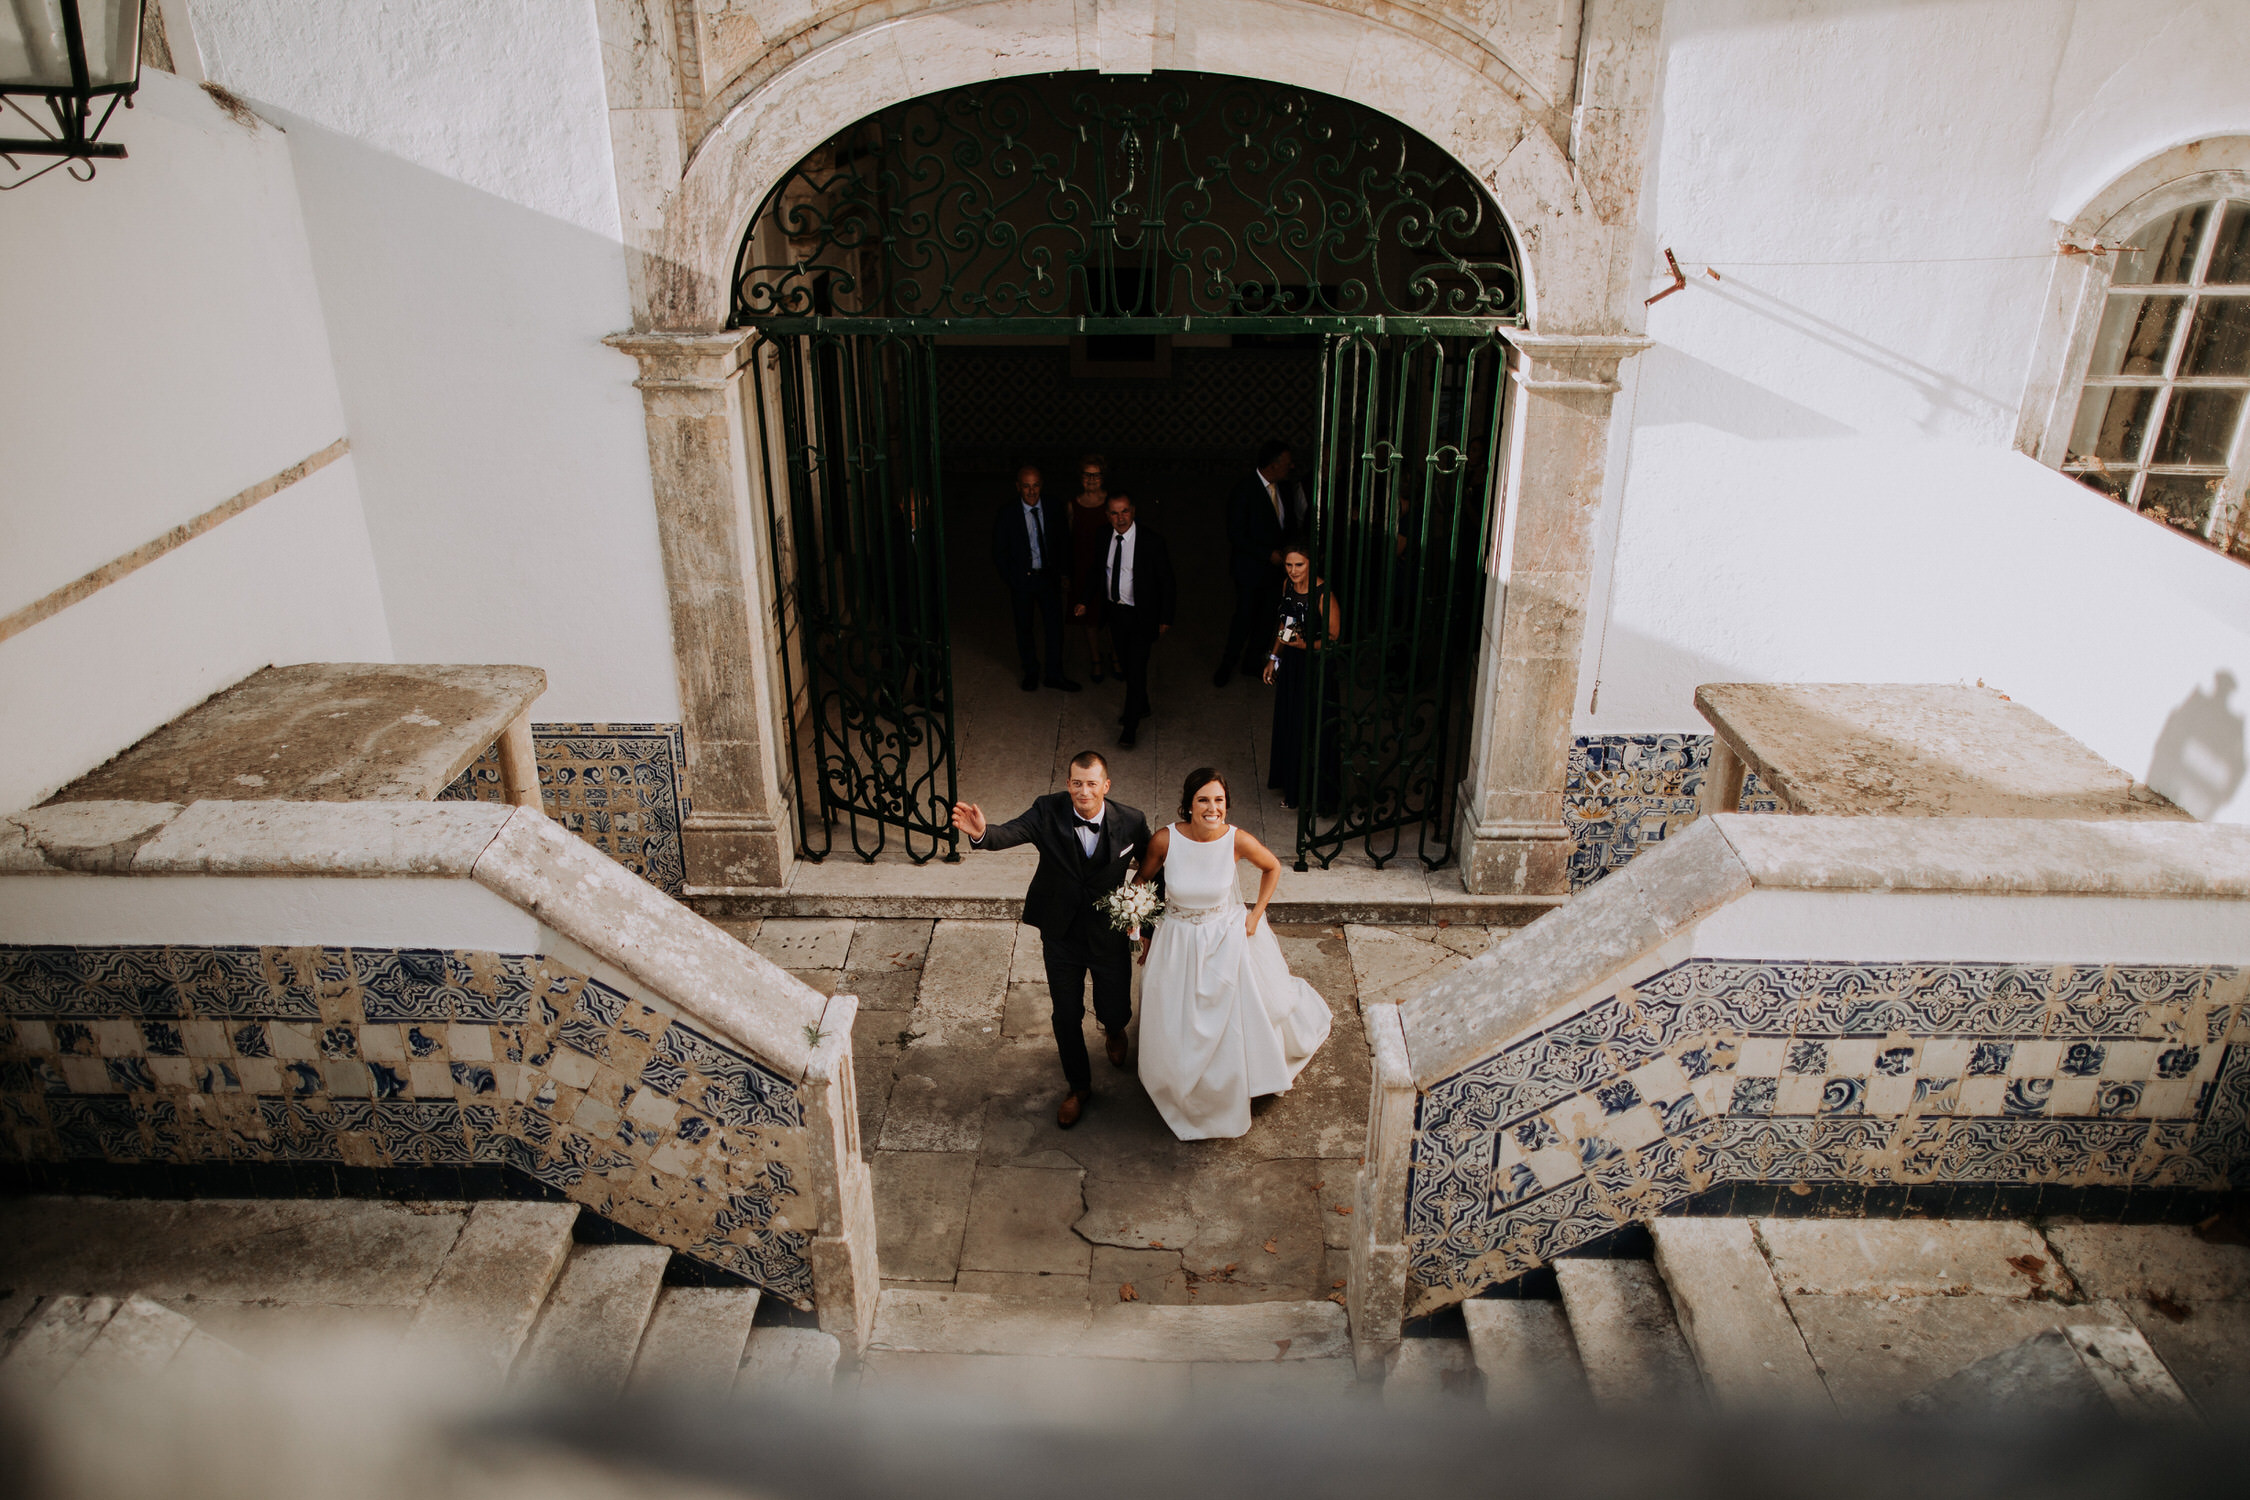 064 Filipe Santiago Fotografia Casamento wedding photographer near venue Lisbon Malveira Ericeira best Sintra Portugal destination